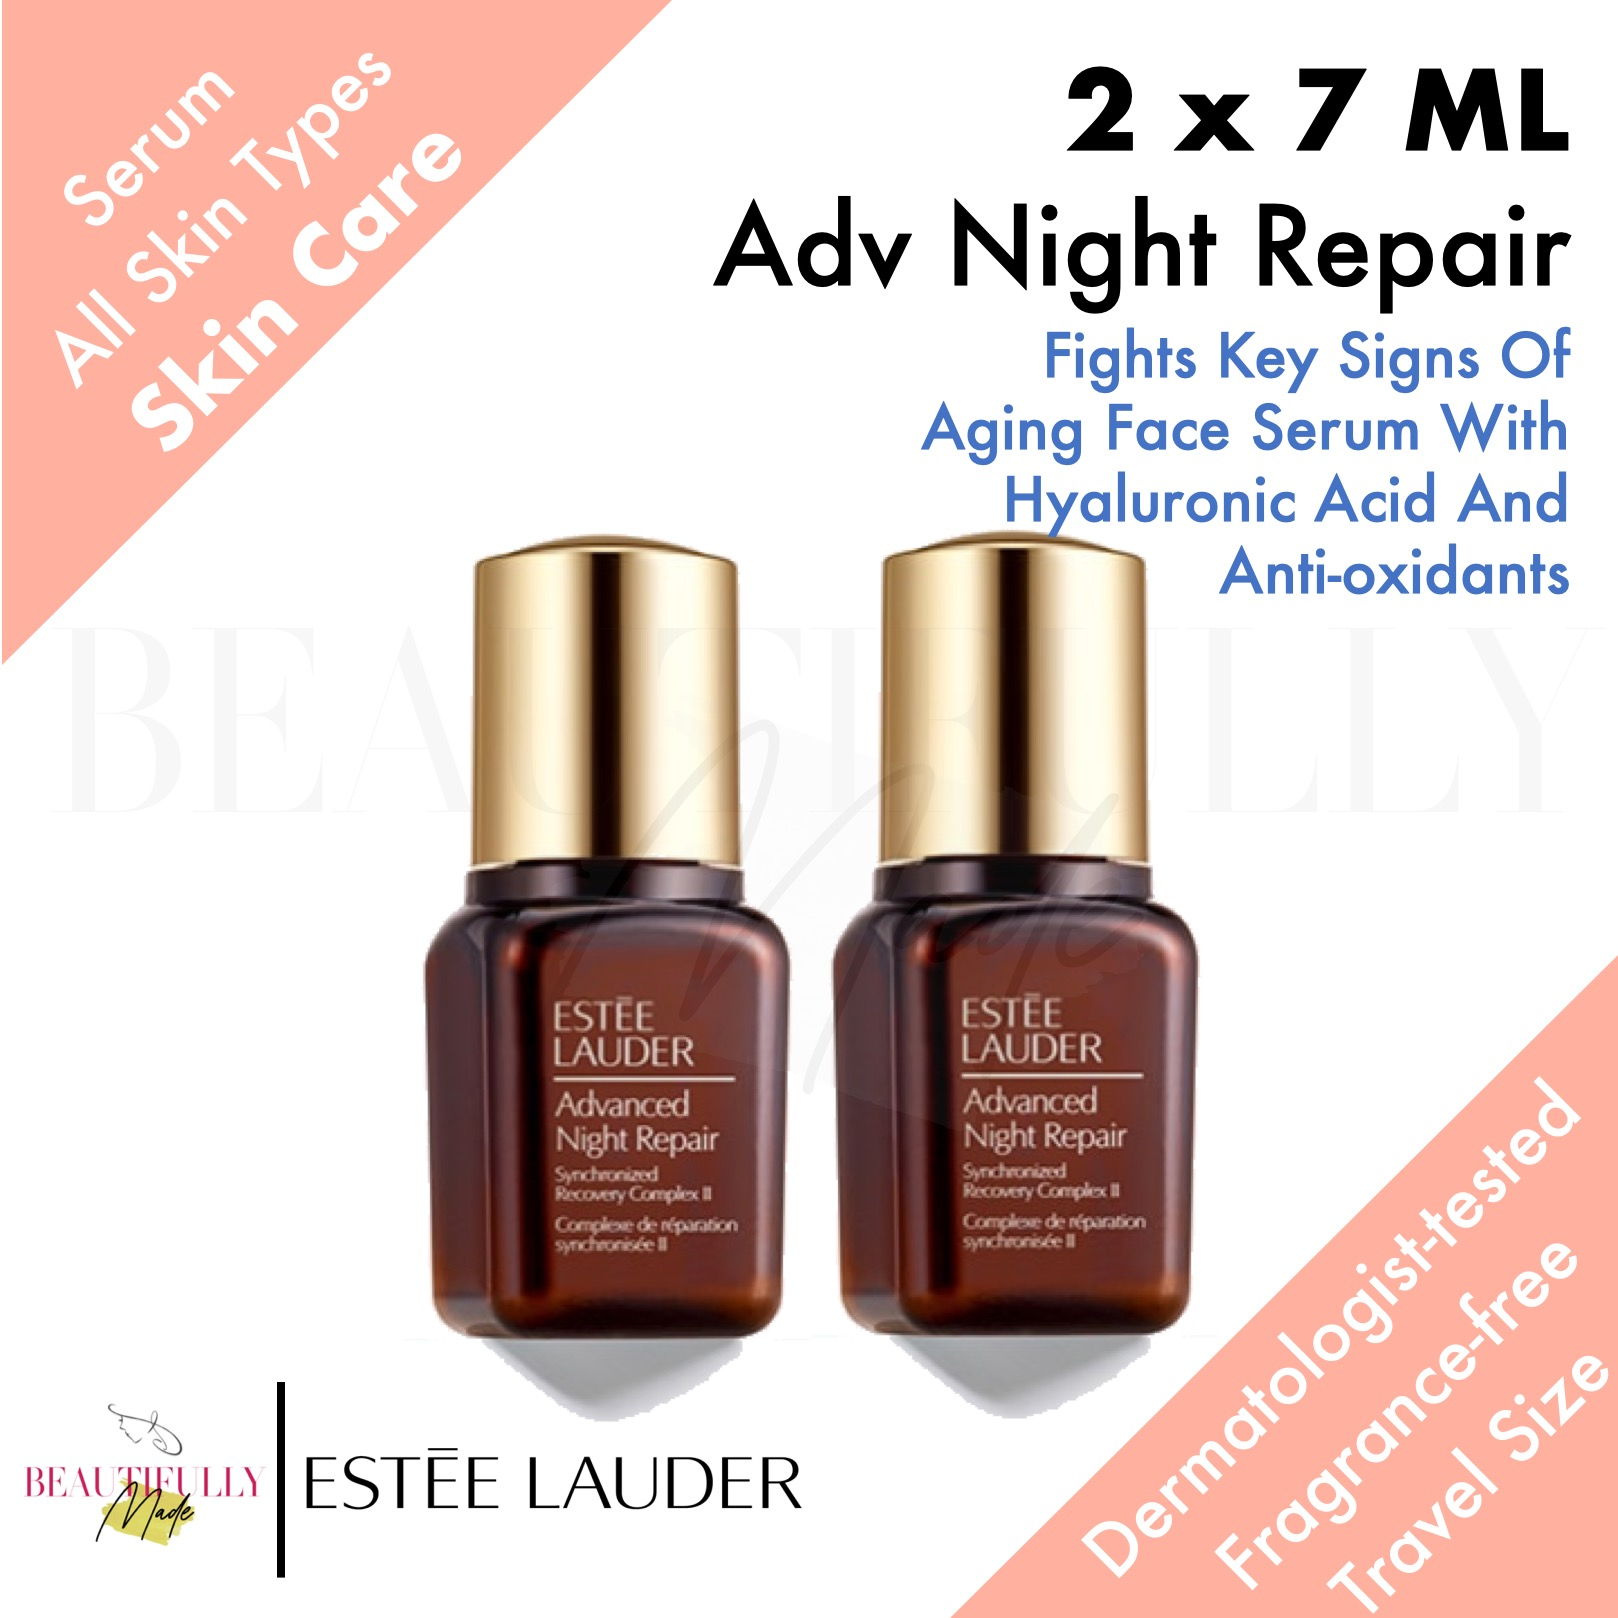 Bundle Of 2 Estee Lauder Advanced Night Repair Synchronized Recovery Complex Ii 2 X 7ml Multiple Signs Of Aging Visible Age Prevention Dryness Dehydration Lines And Wrinkles Dullness Loss Of Radiance Lazada Singapore